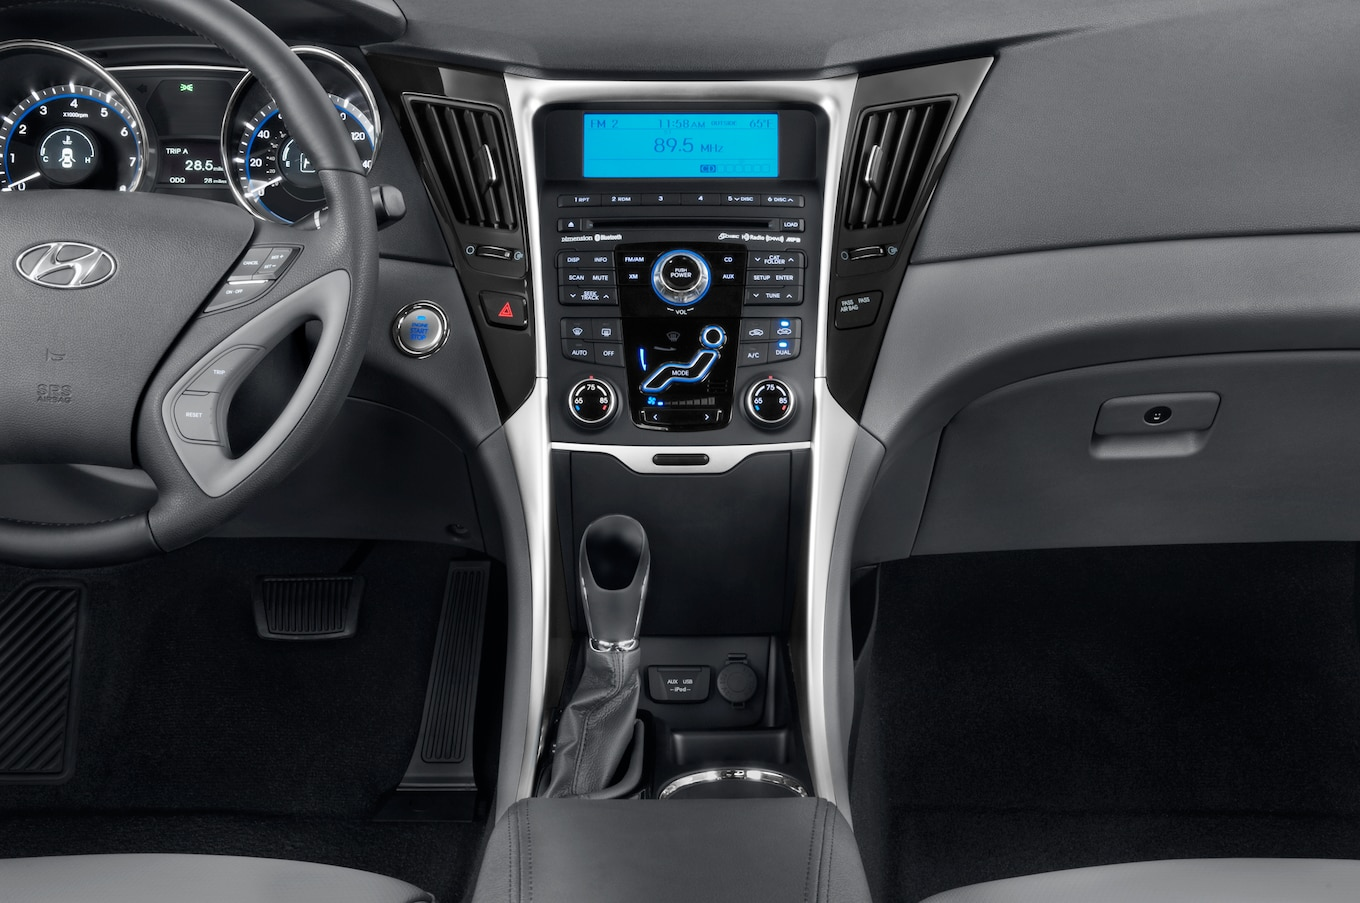 2011 Sonata Fuse Panel Diagram Hyundai